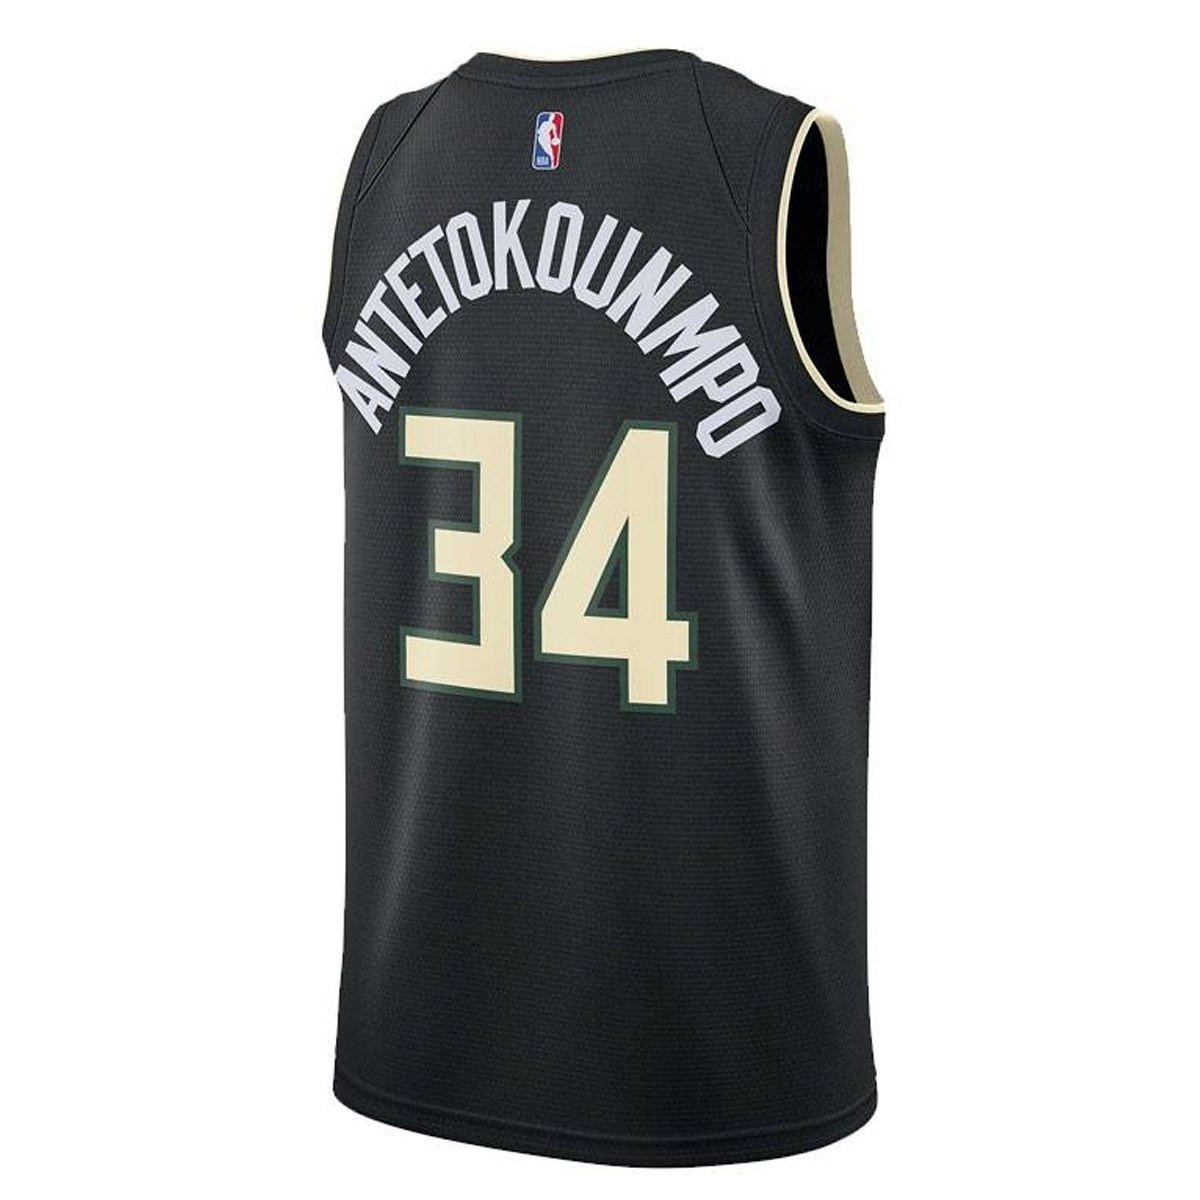 Jordan Jr NBA Milwaukee Bucks Swingman Jersey Antetokounmpo 'Statement Edition'-EY2B7BXAP-BCKGA